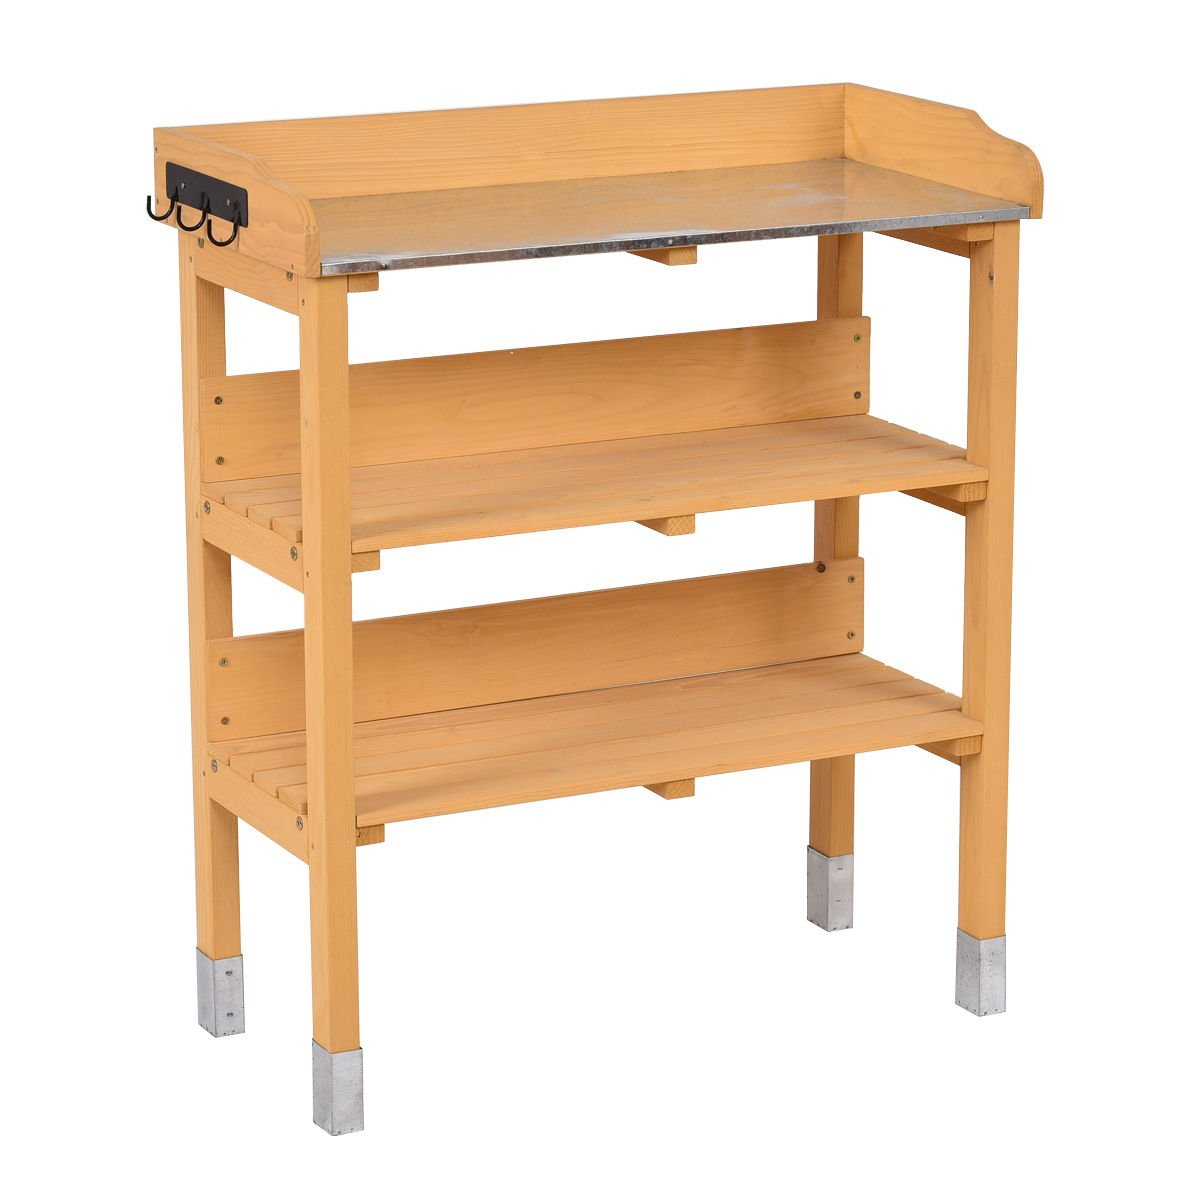 3 Tier Potting Bench Garden Planting Workstation Shelves With 3 Hooks Wooden